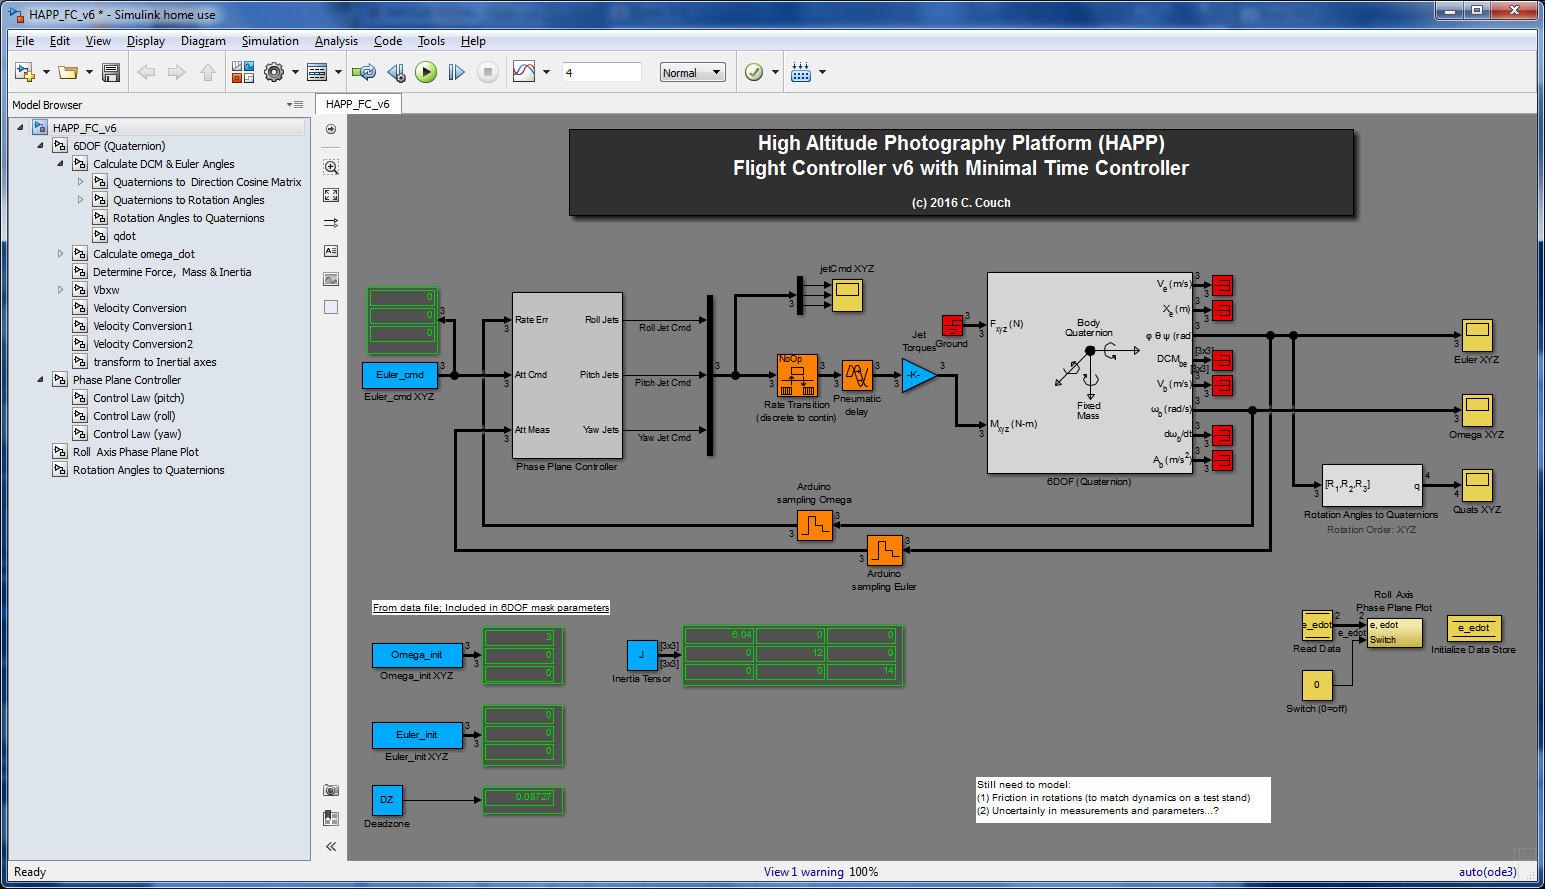 HAPP Flight Controller Simulink Model    Blue = Constants; Grey = Controller & Dynamics; Yellow = Output; Orange = AD/DA; Red = Unused (translational dynamics)